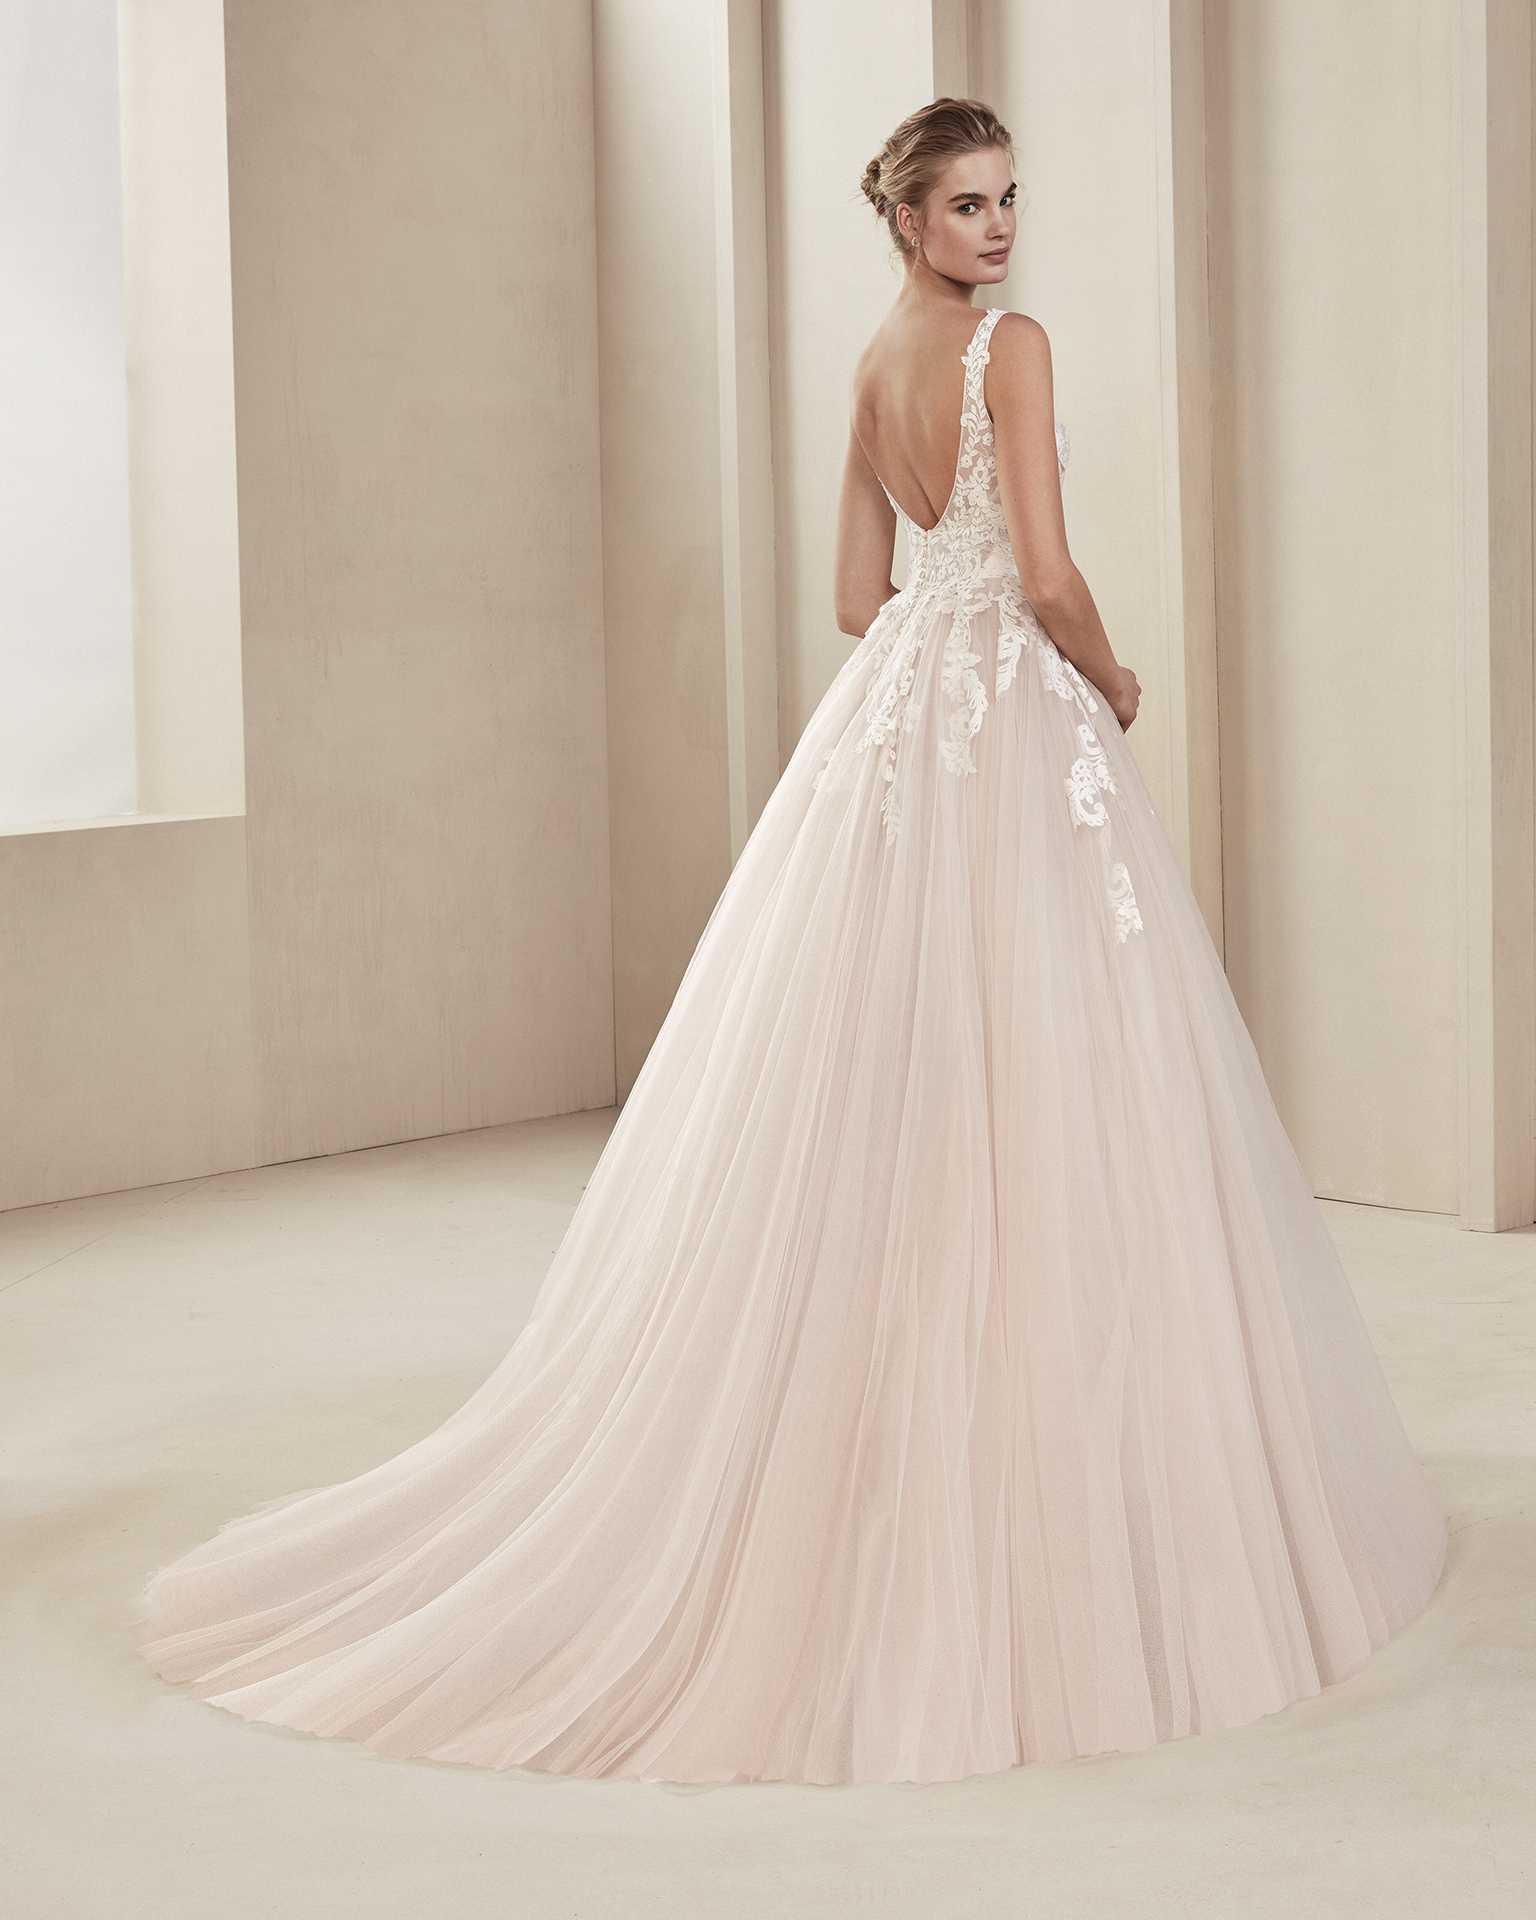 Romantic tulle and beaded lace wedding dress. With V-neckline and low back. Available in natural/rose and natural. 2019 ALMA_NOVIA Collection.